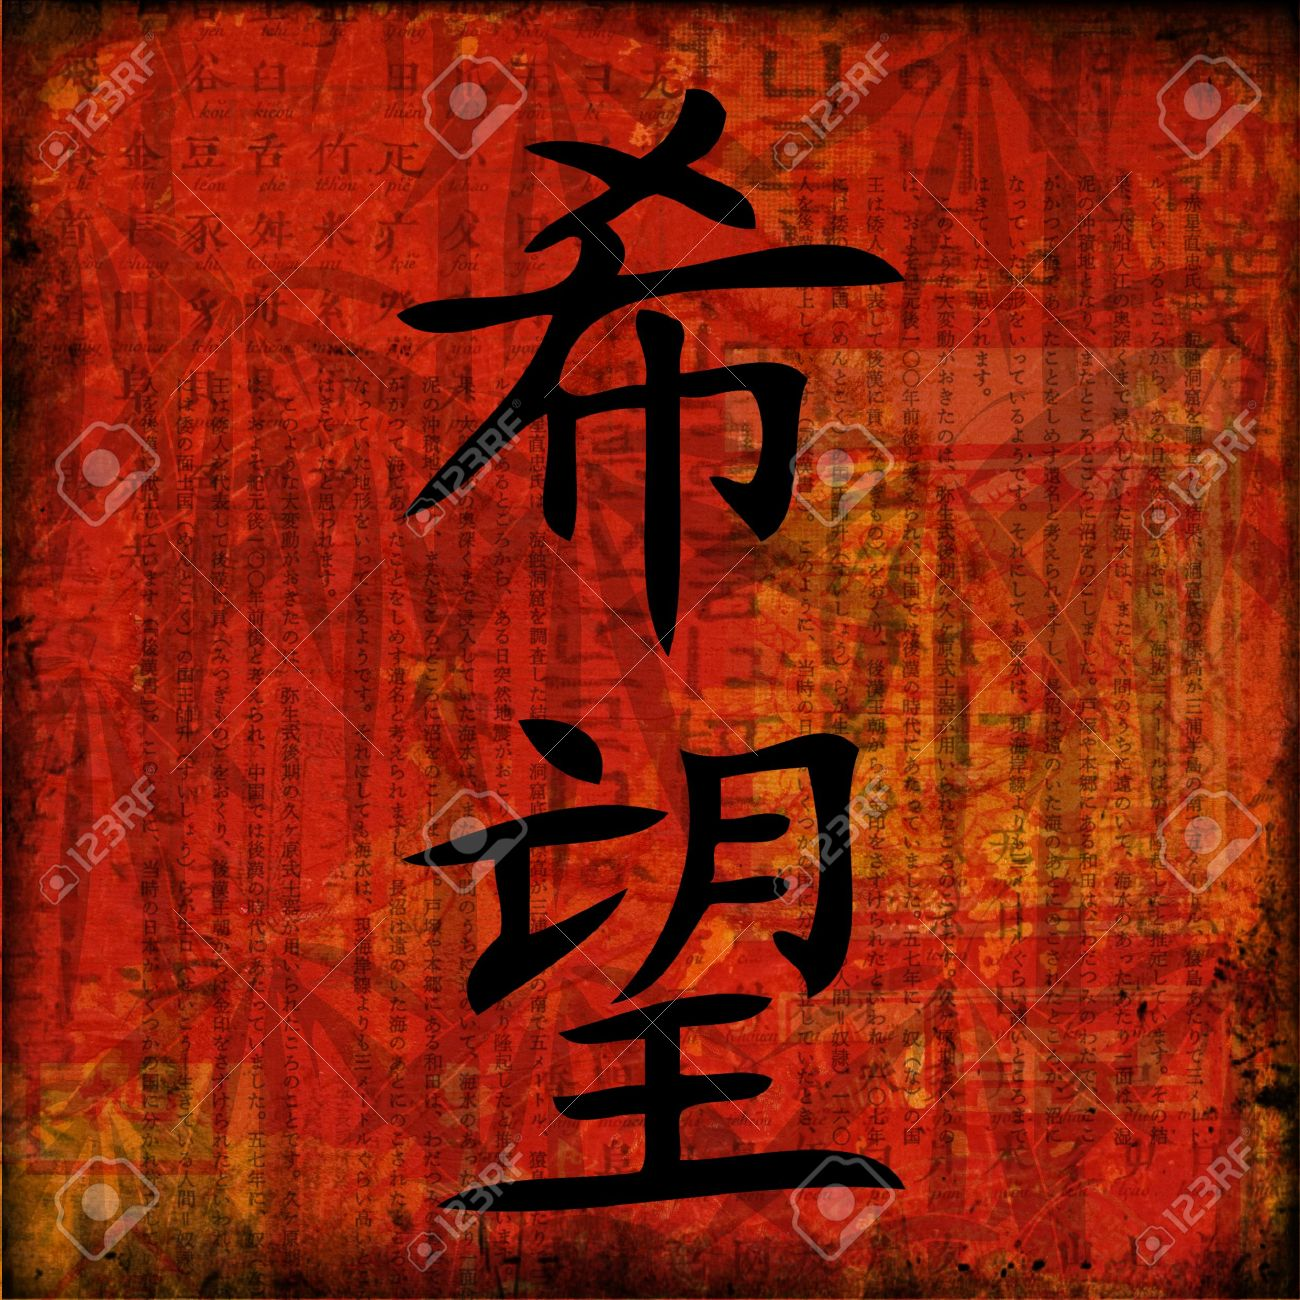 digital created collage asia style with chinese symbol for hope Stock Photo - 6384311